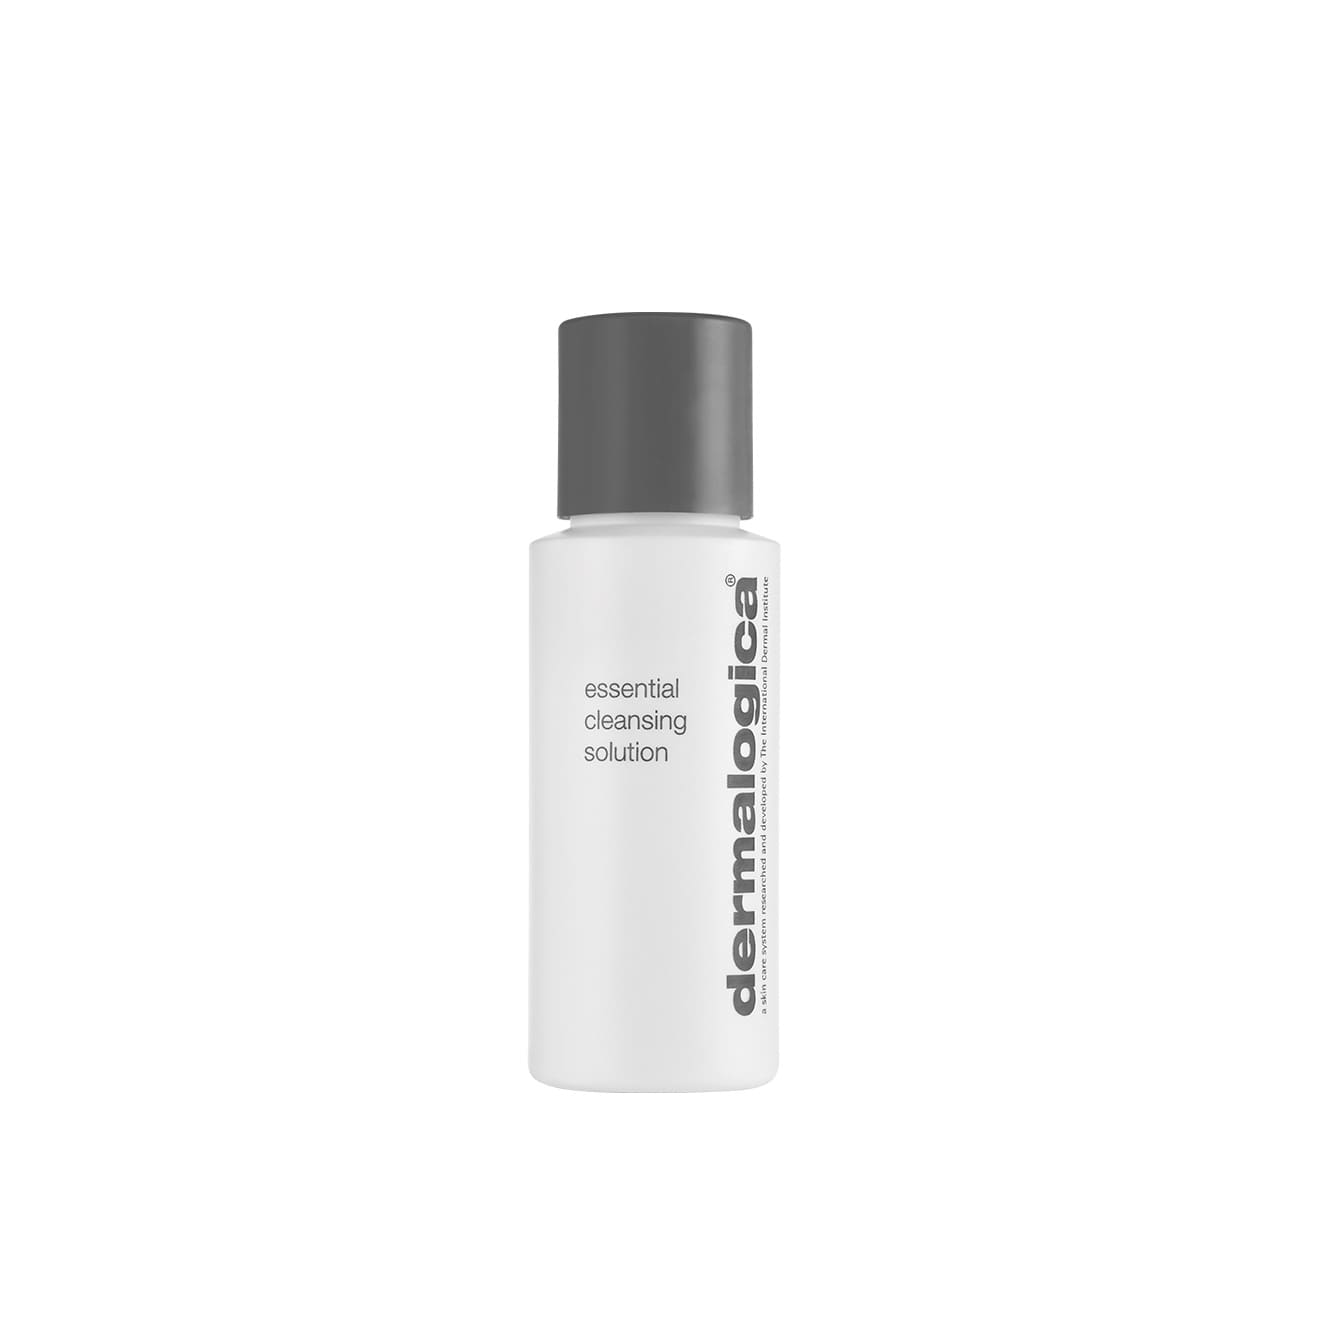 Crème Nettoyante Onctueuse - Essential Cleansing Solution 250ml Dermalogica